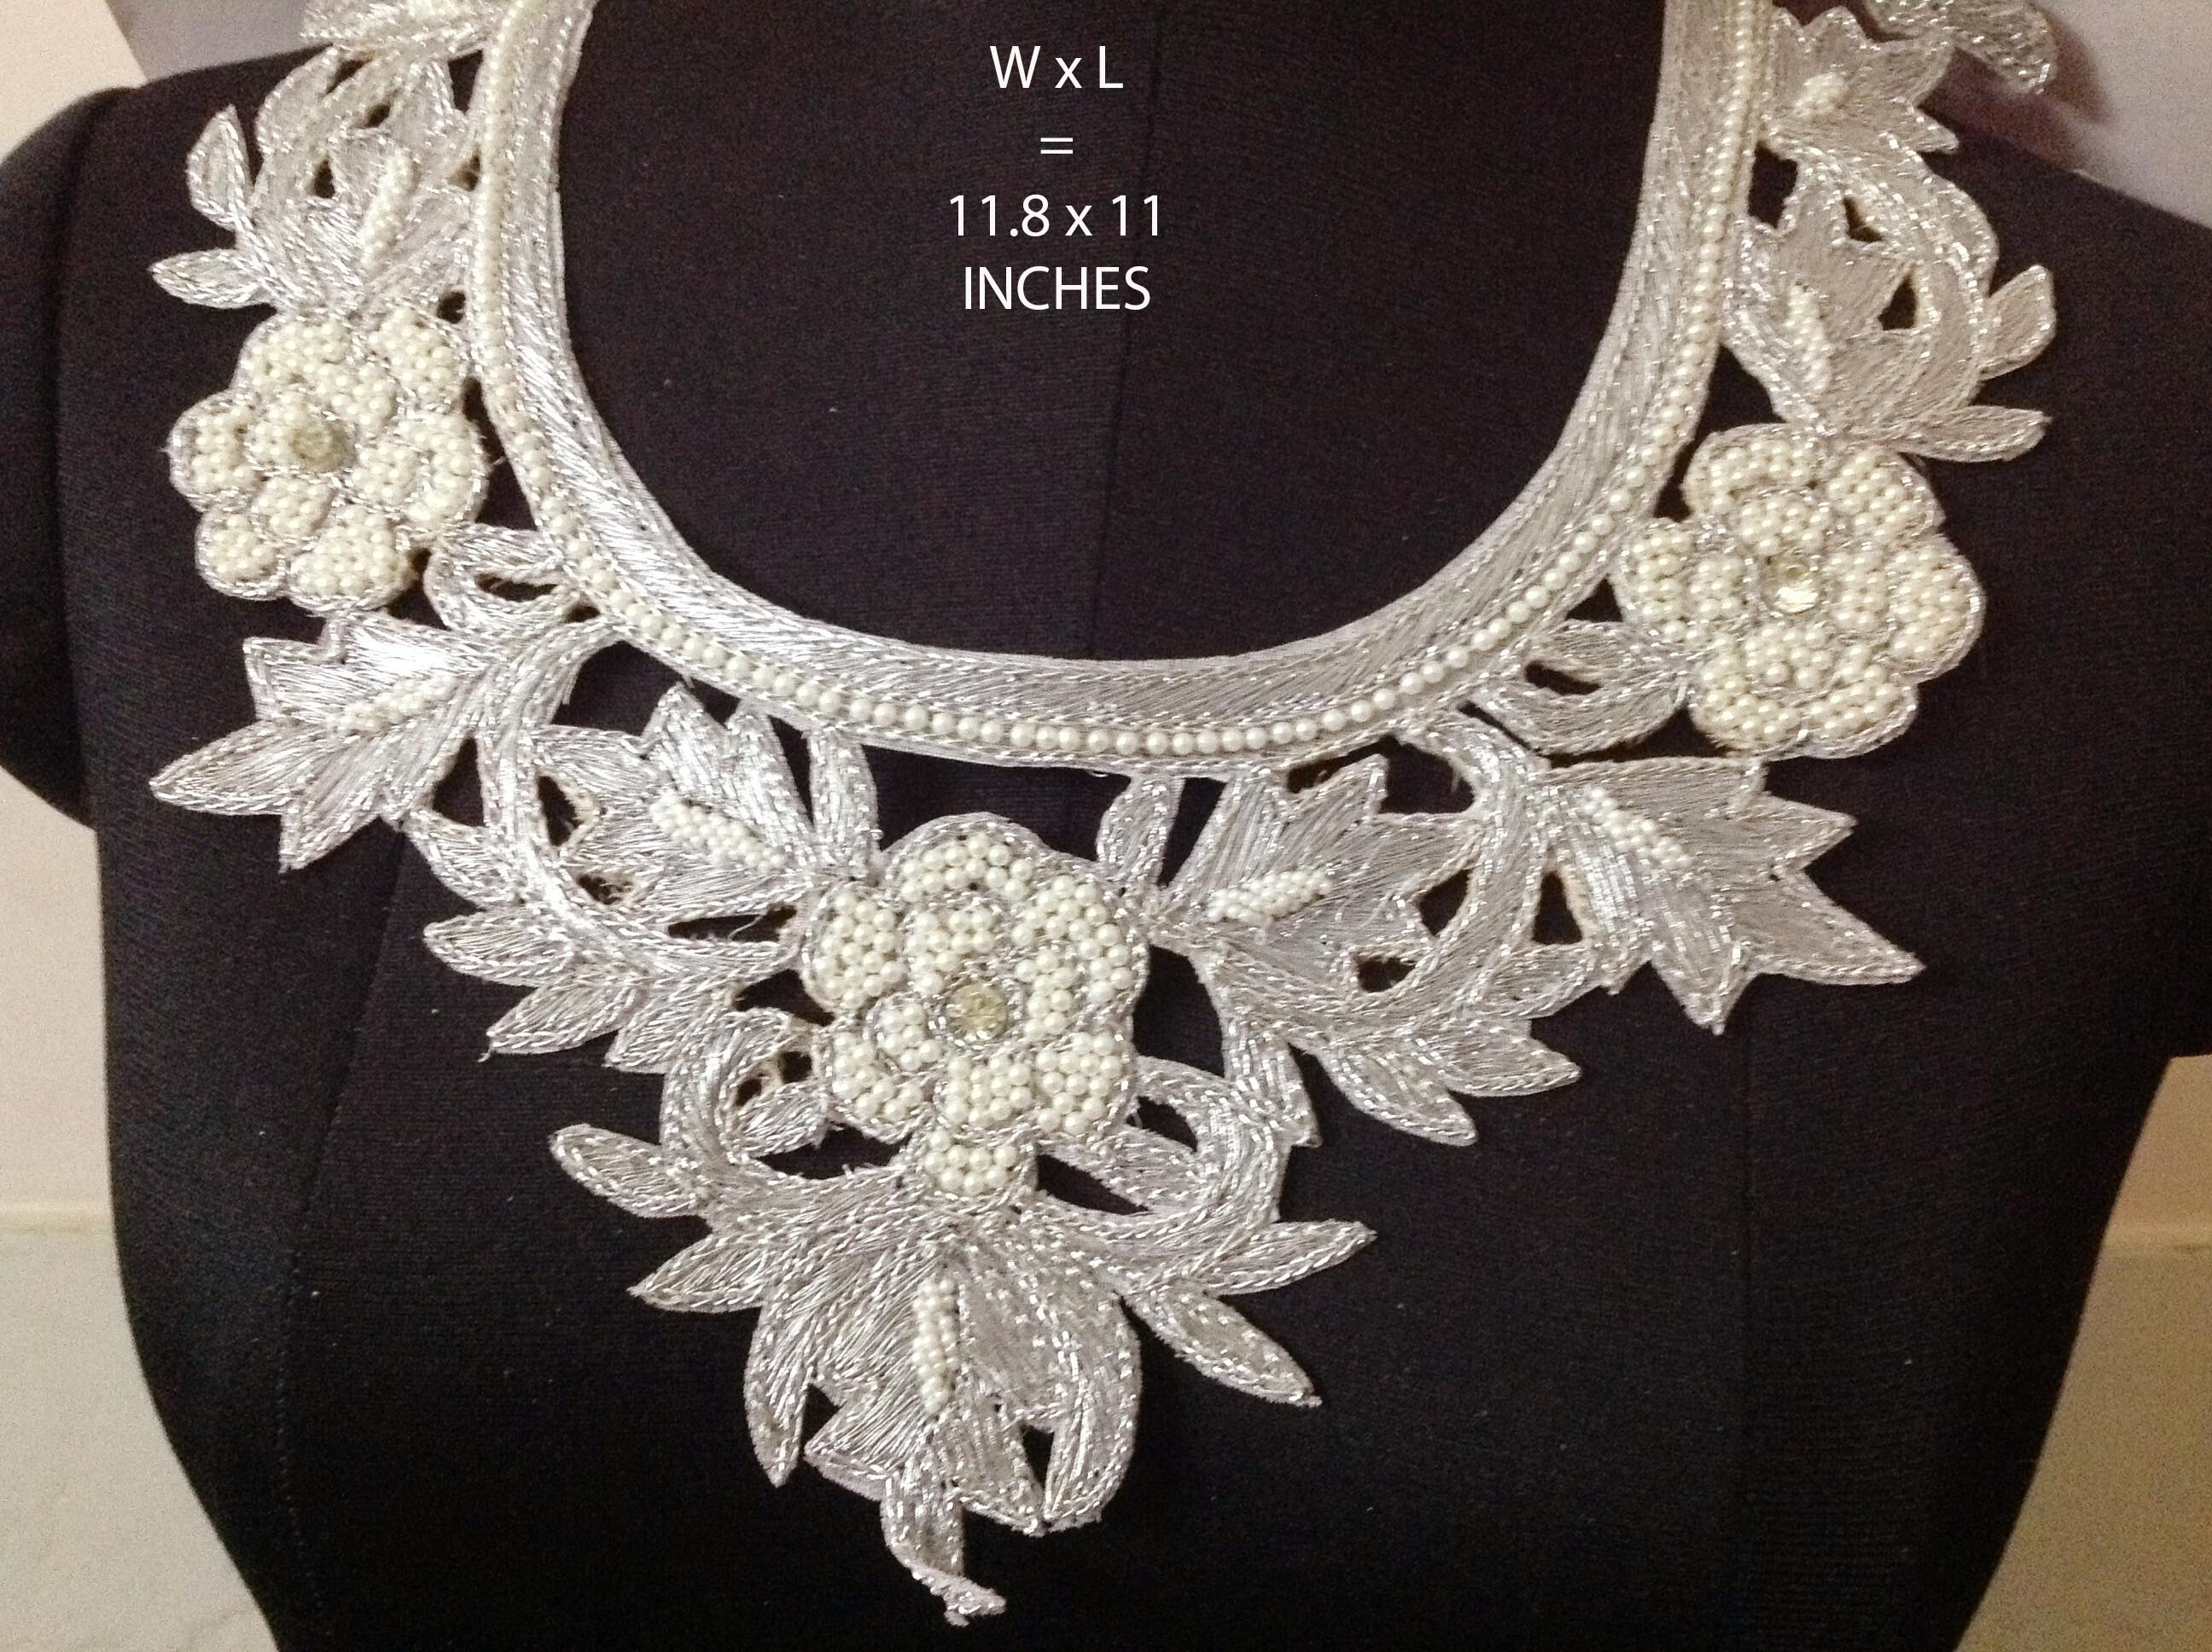 Black Fabric Lace Sewing Collar Neck Line Appliques Craft Trimmings Design No14